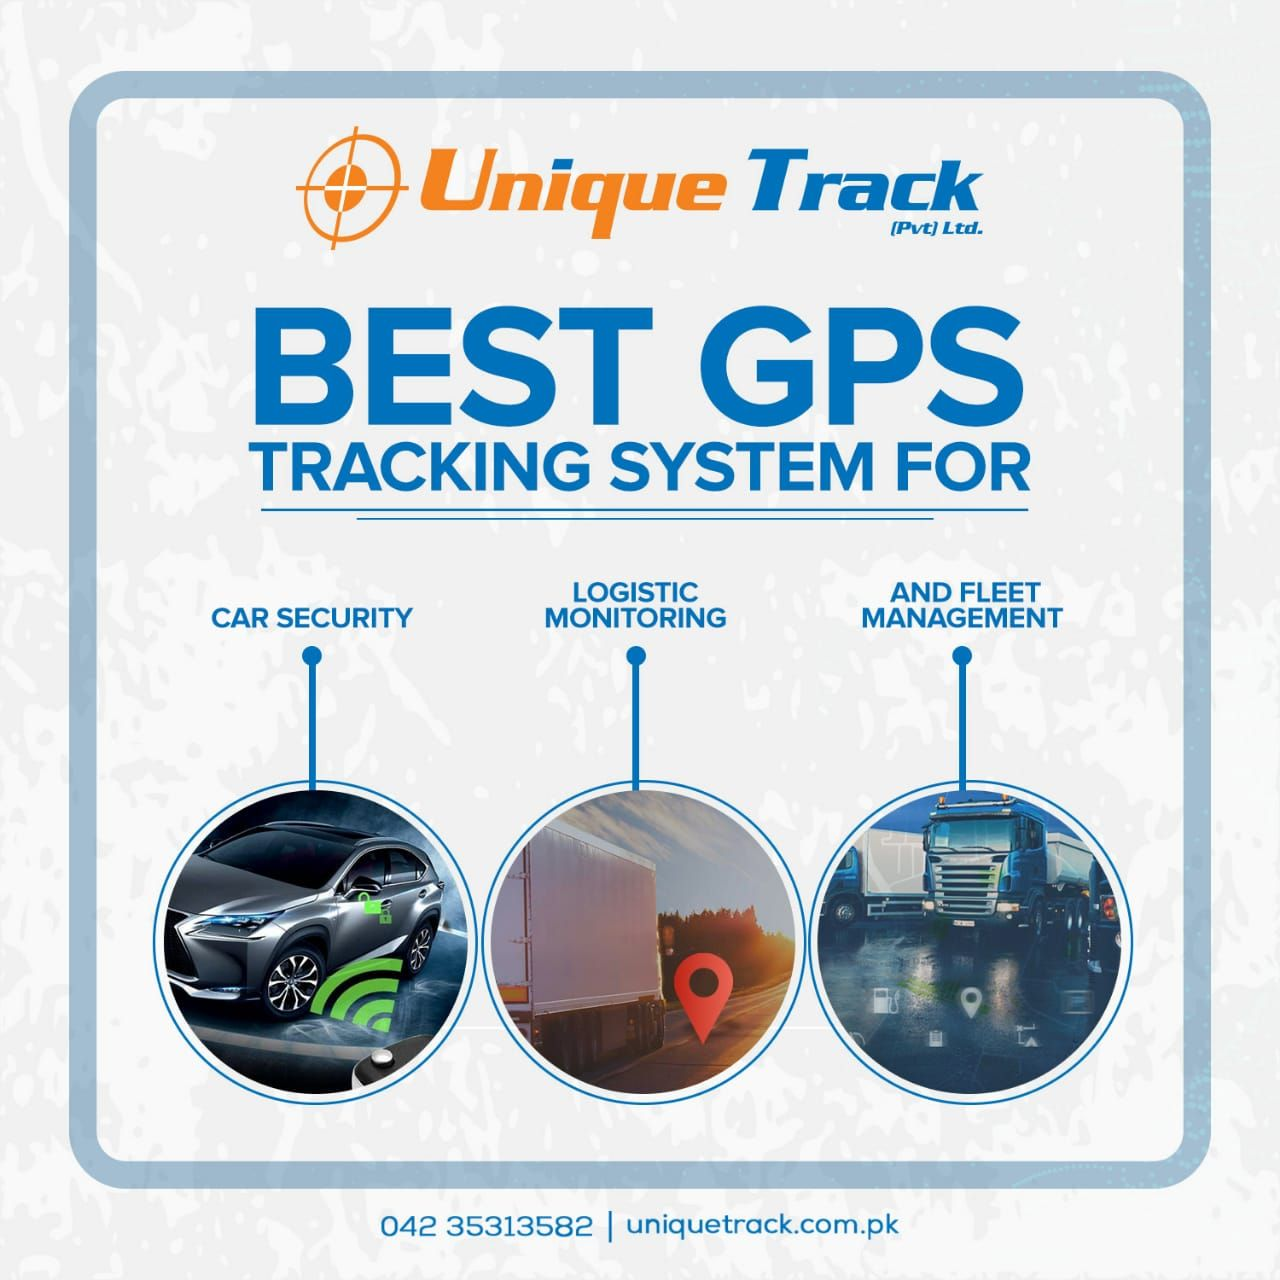 Best Gps Tracking System Gps Tracker For Car Security Security System For Logistic Monitoring Gps Tracking System Gps Tracking Best Gps Tracker